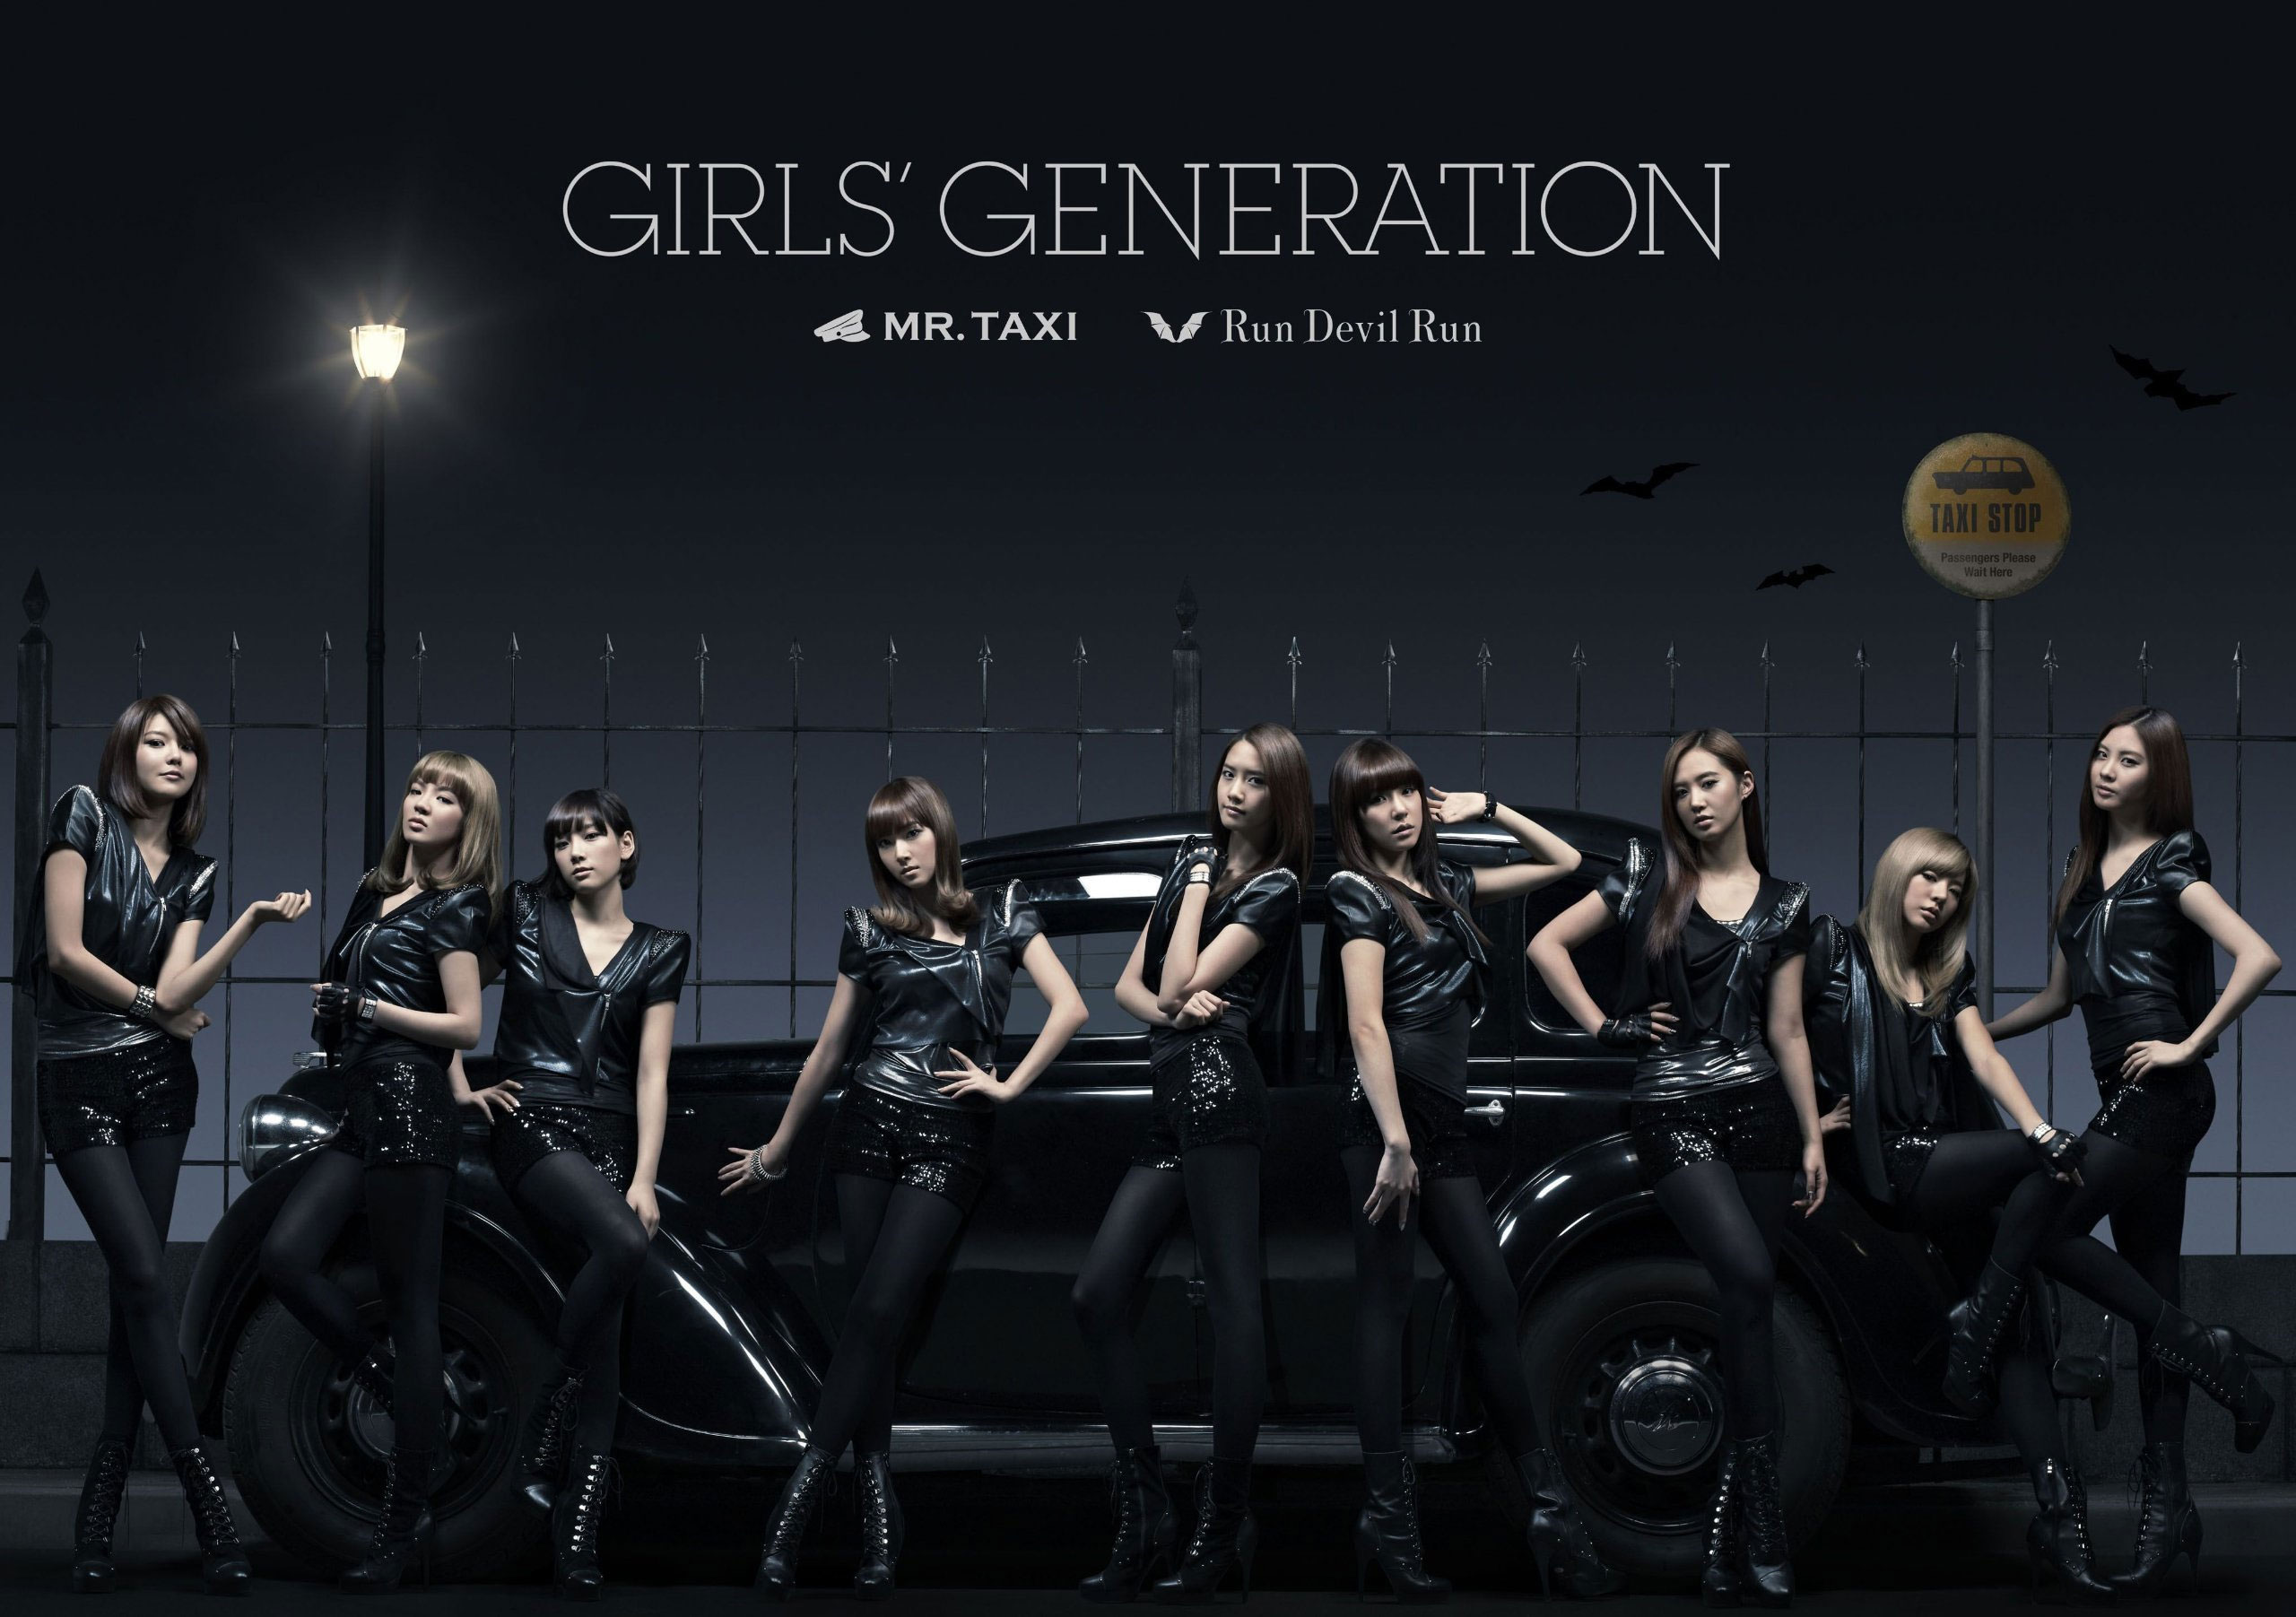 Girls Generation Mr Taxi Japan single album